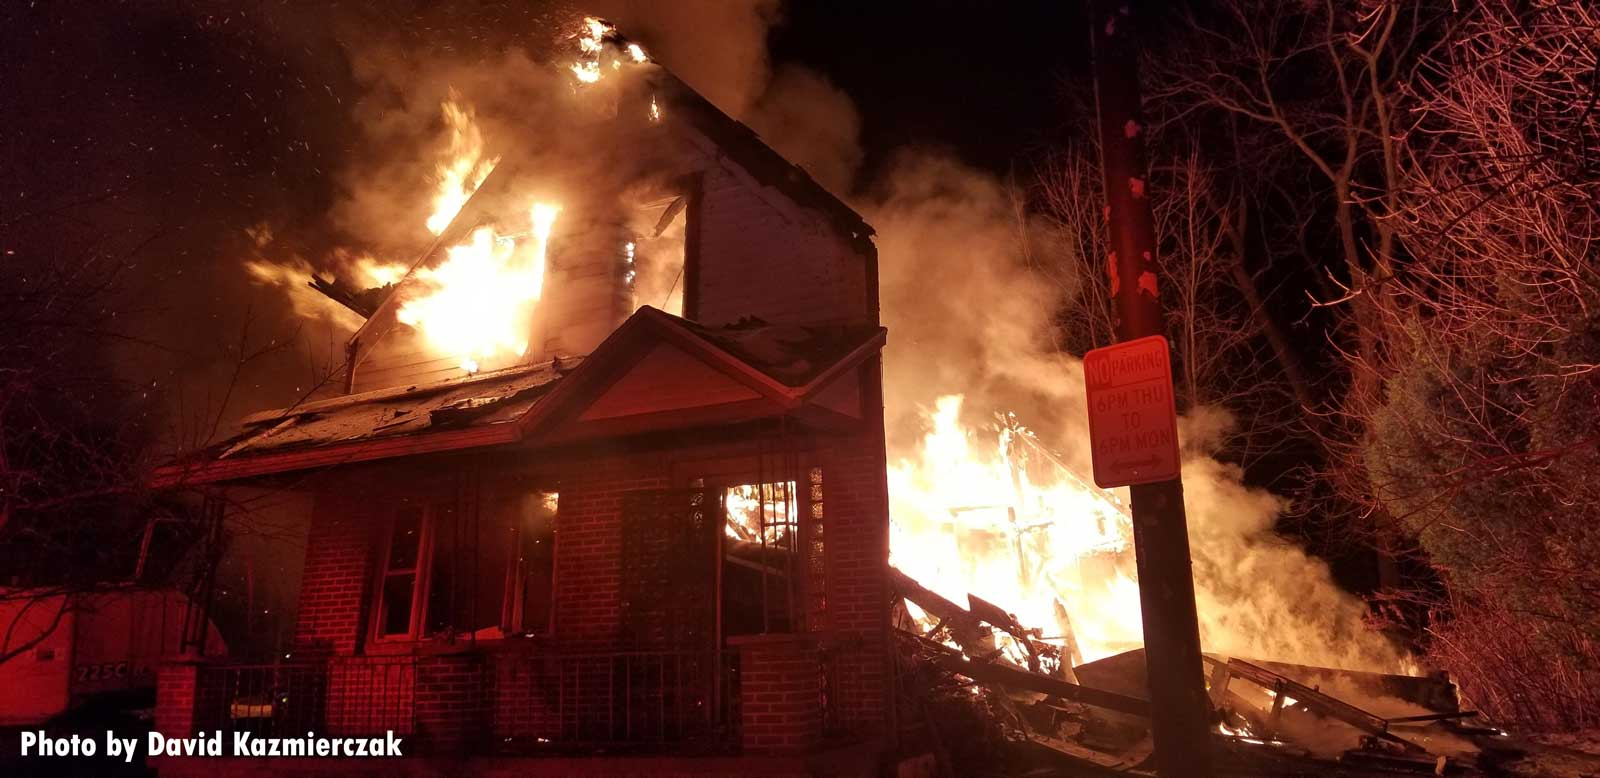 Flames burst from a home in Buffalo, New York.